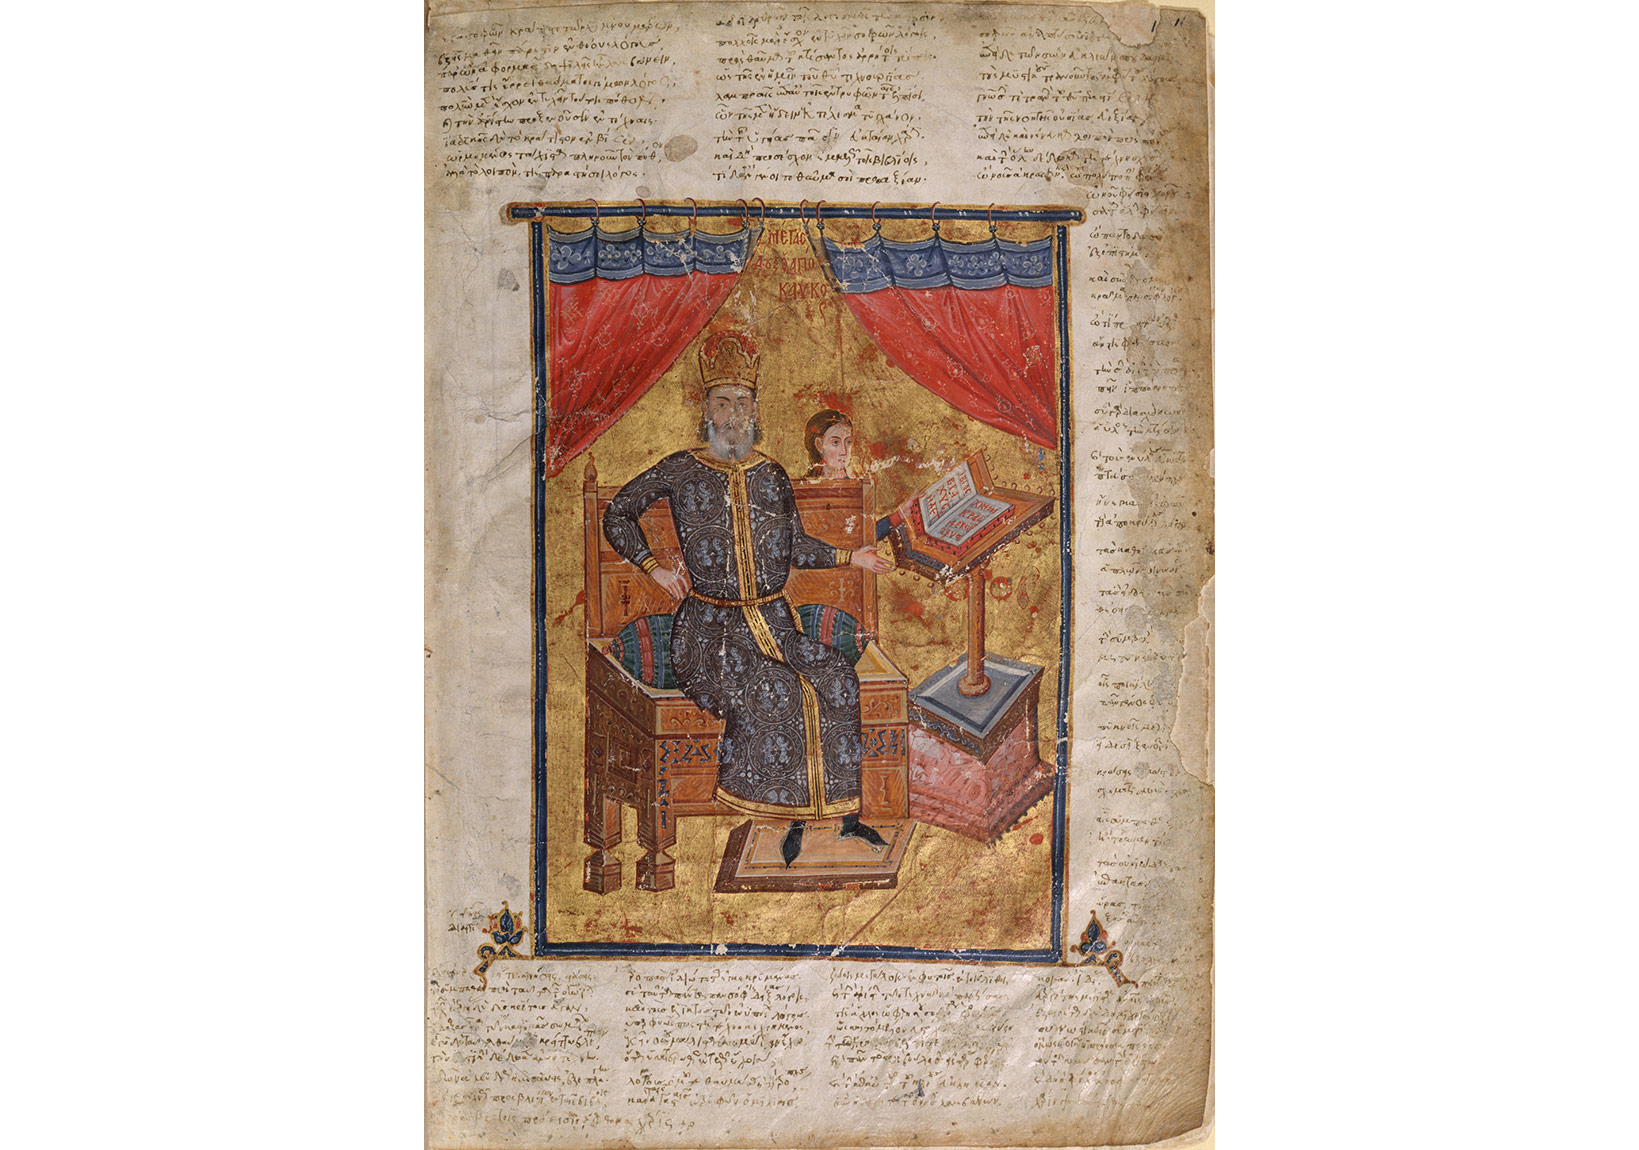 Hippokrates'in eserleri, Yak. 1338 (metin), 1341–1345 (tezhipler), Paris, Bibliothèque Nationale de France, Département des Manuscrits, cod. gr. 2144.